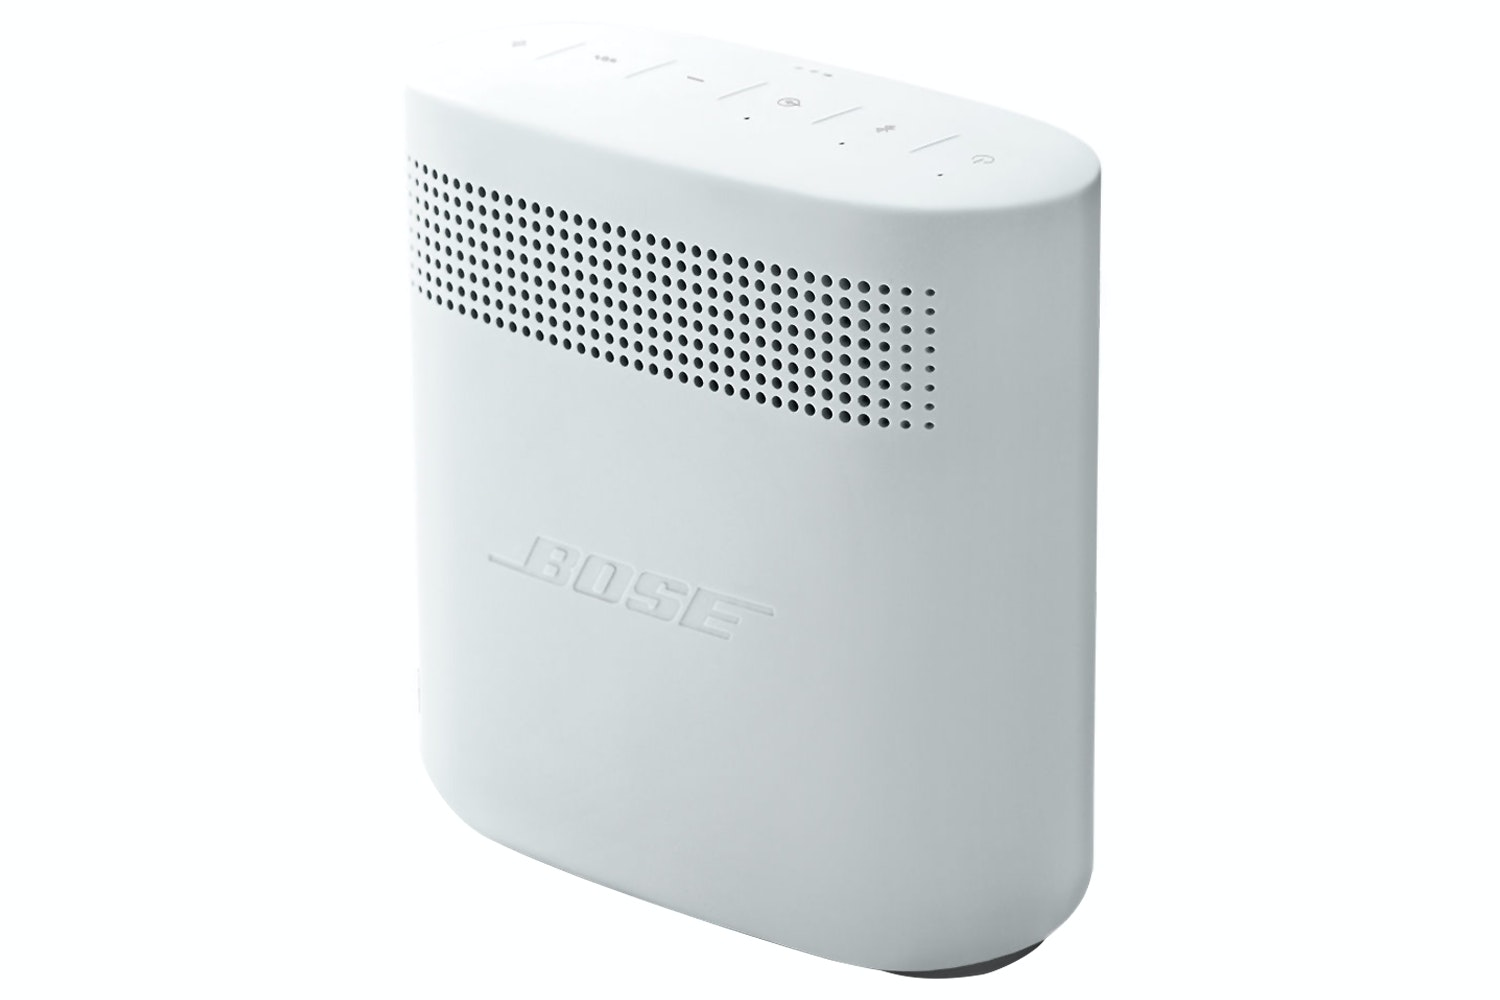 Bose SoundLink Colour Bluetooth Speaker